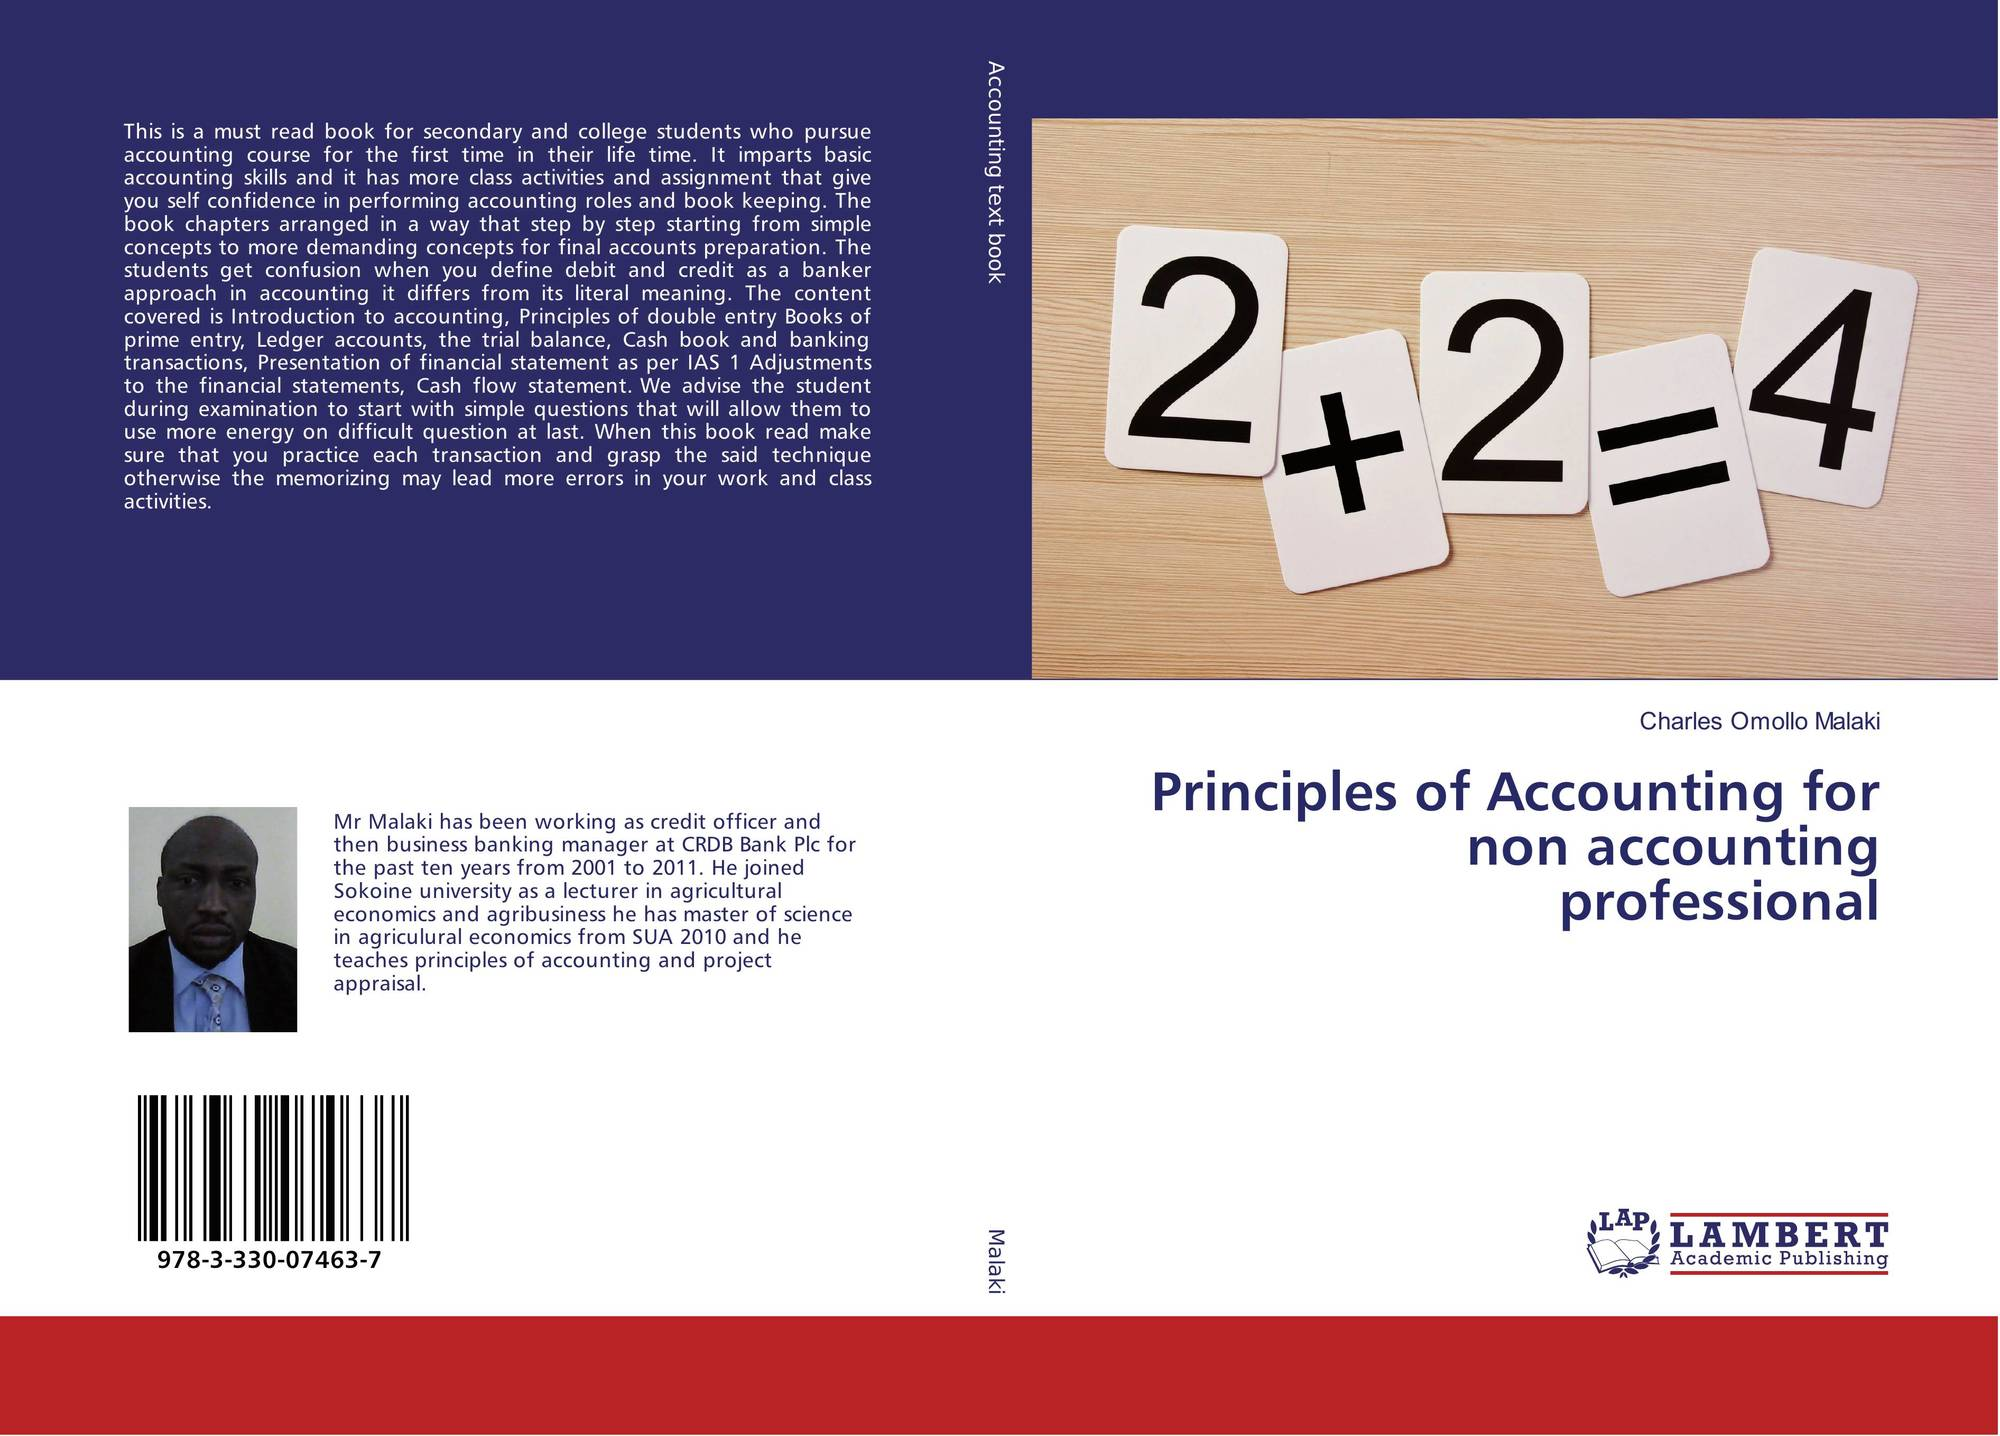 an examination of the effect of open marketing on the profession of accounting The openness of the discipline is among its most attractive features, perennially renewing it and making it relevant to new constituencies scholarship—the discovery, exchange, interpretation, and presentation of information about the past—is basic to the professional practice of history.